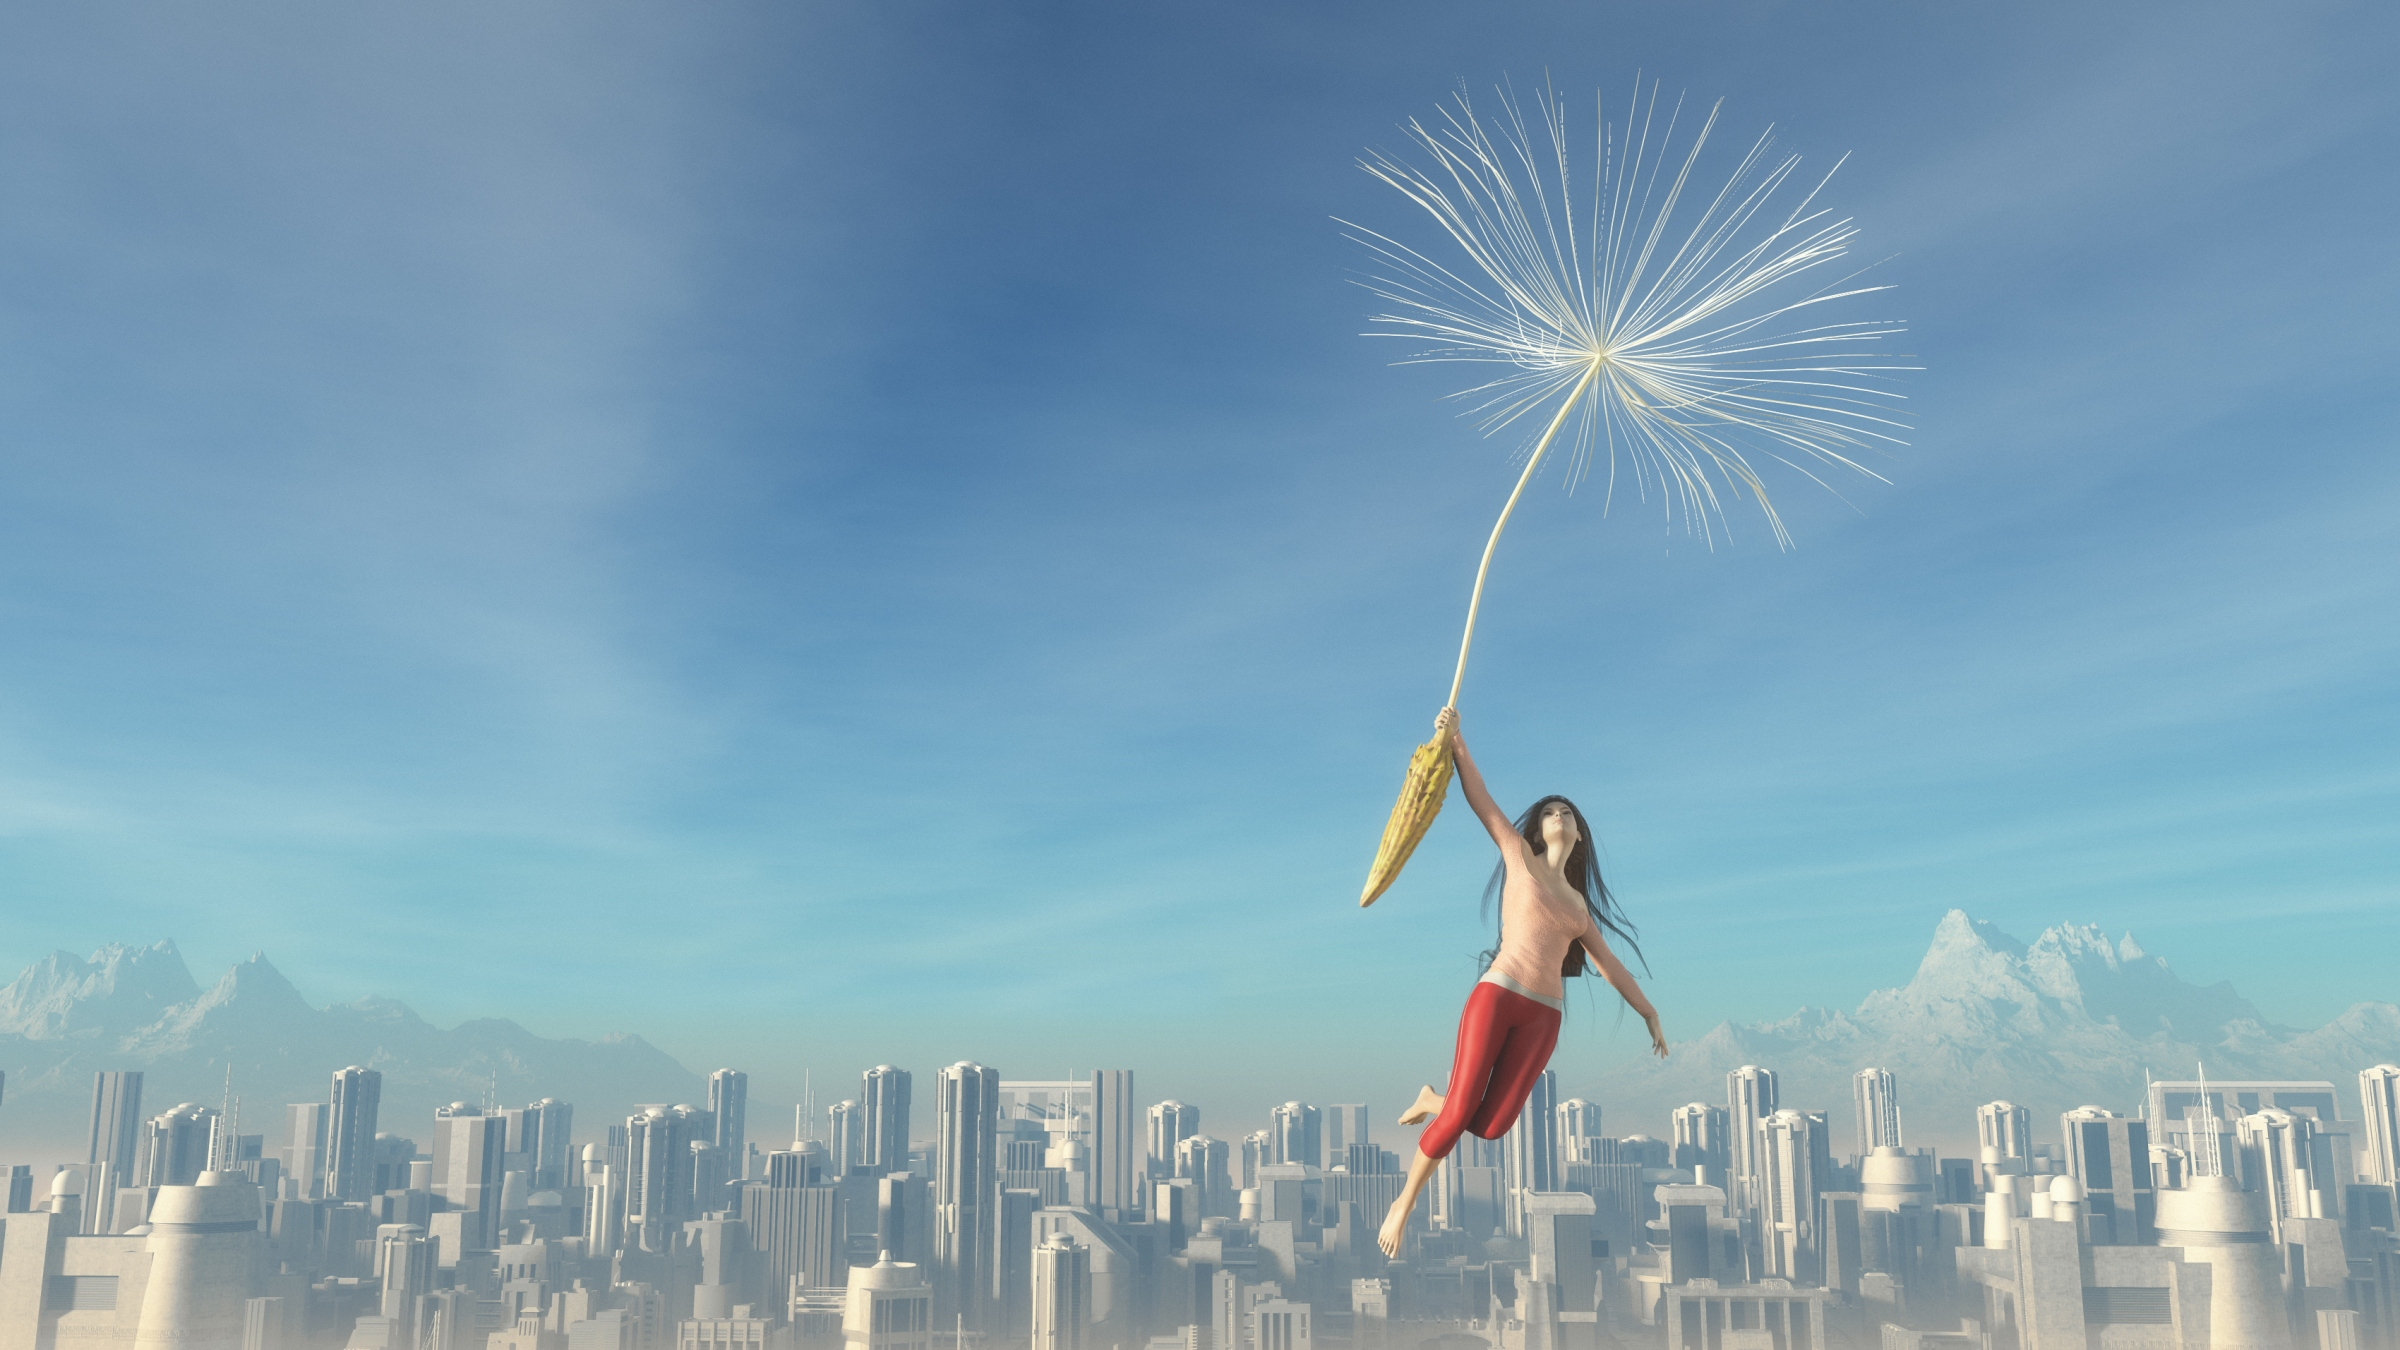 The young girl flies over a city with giant dandelion. This is a 3D render illustration